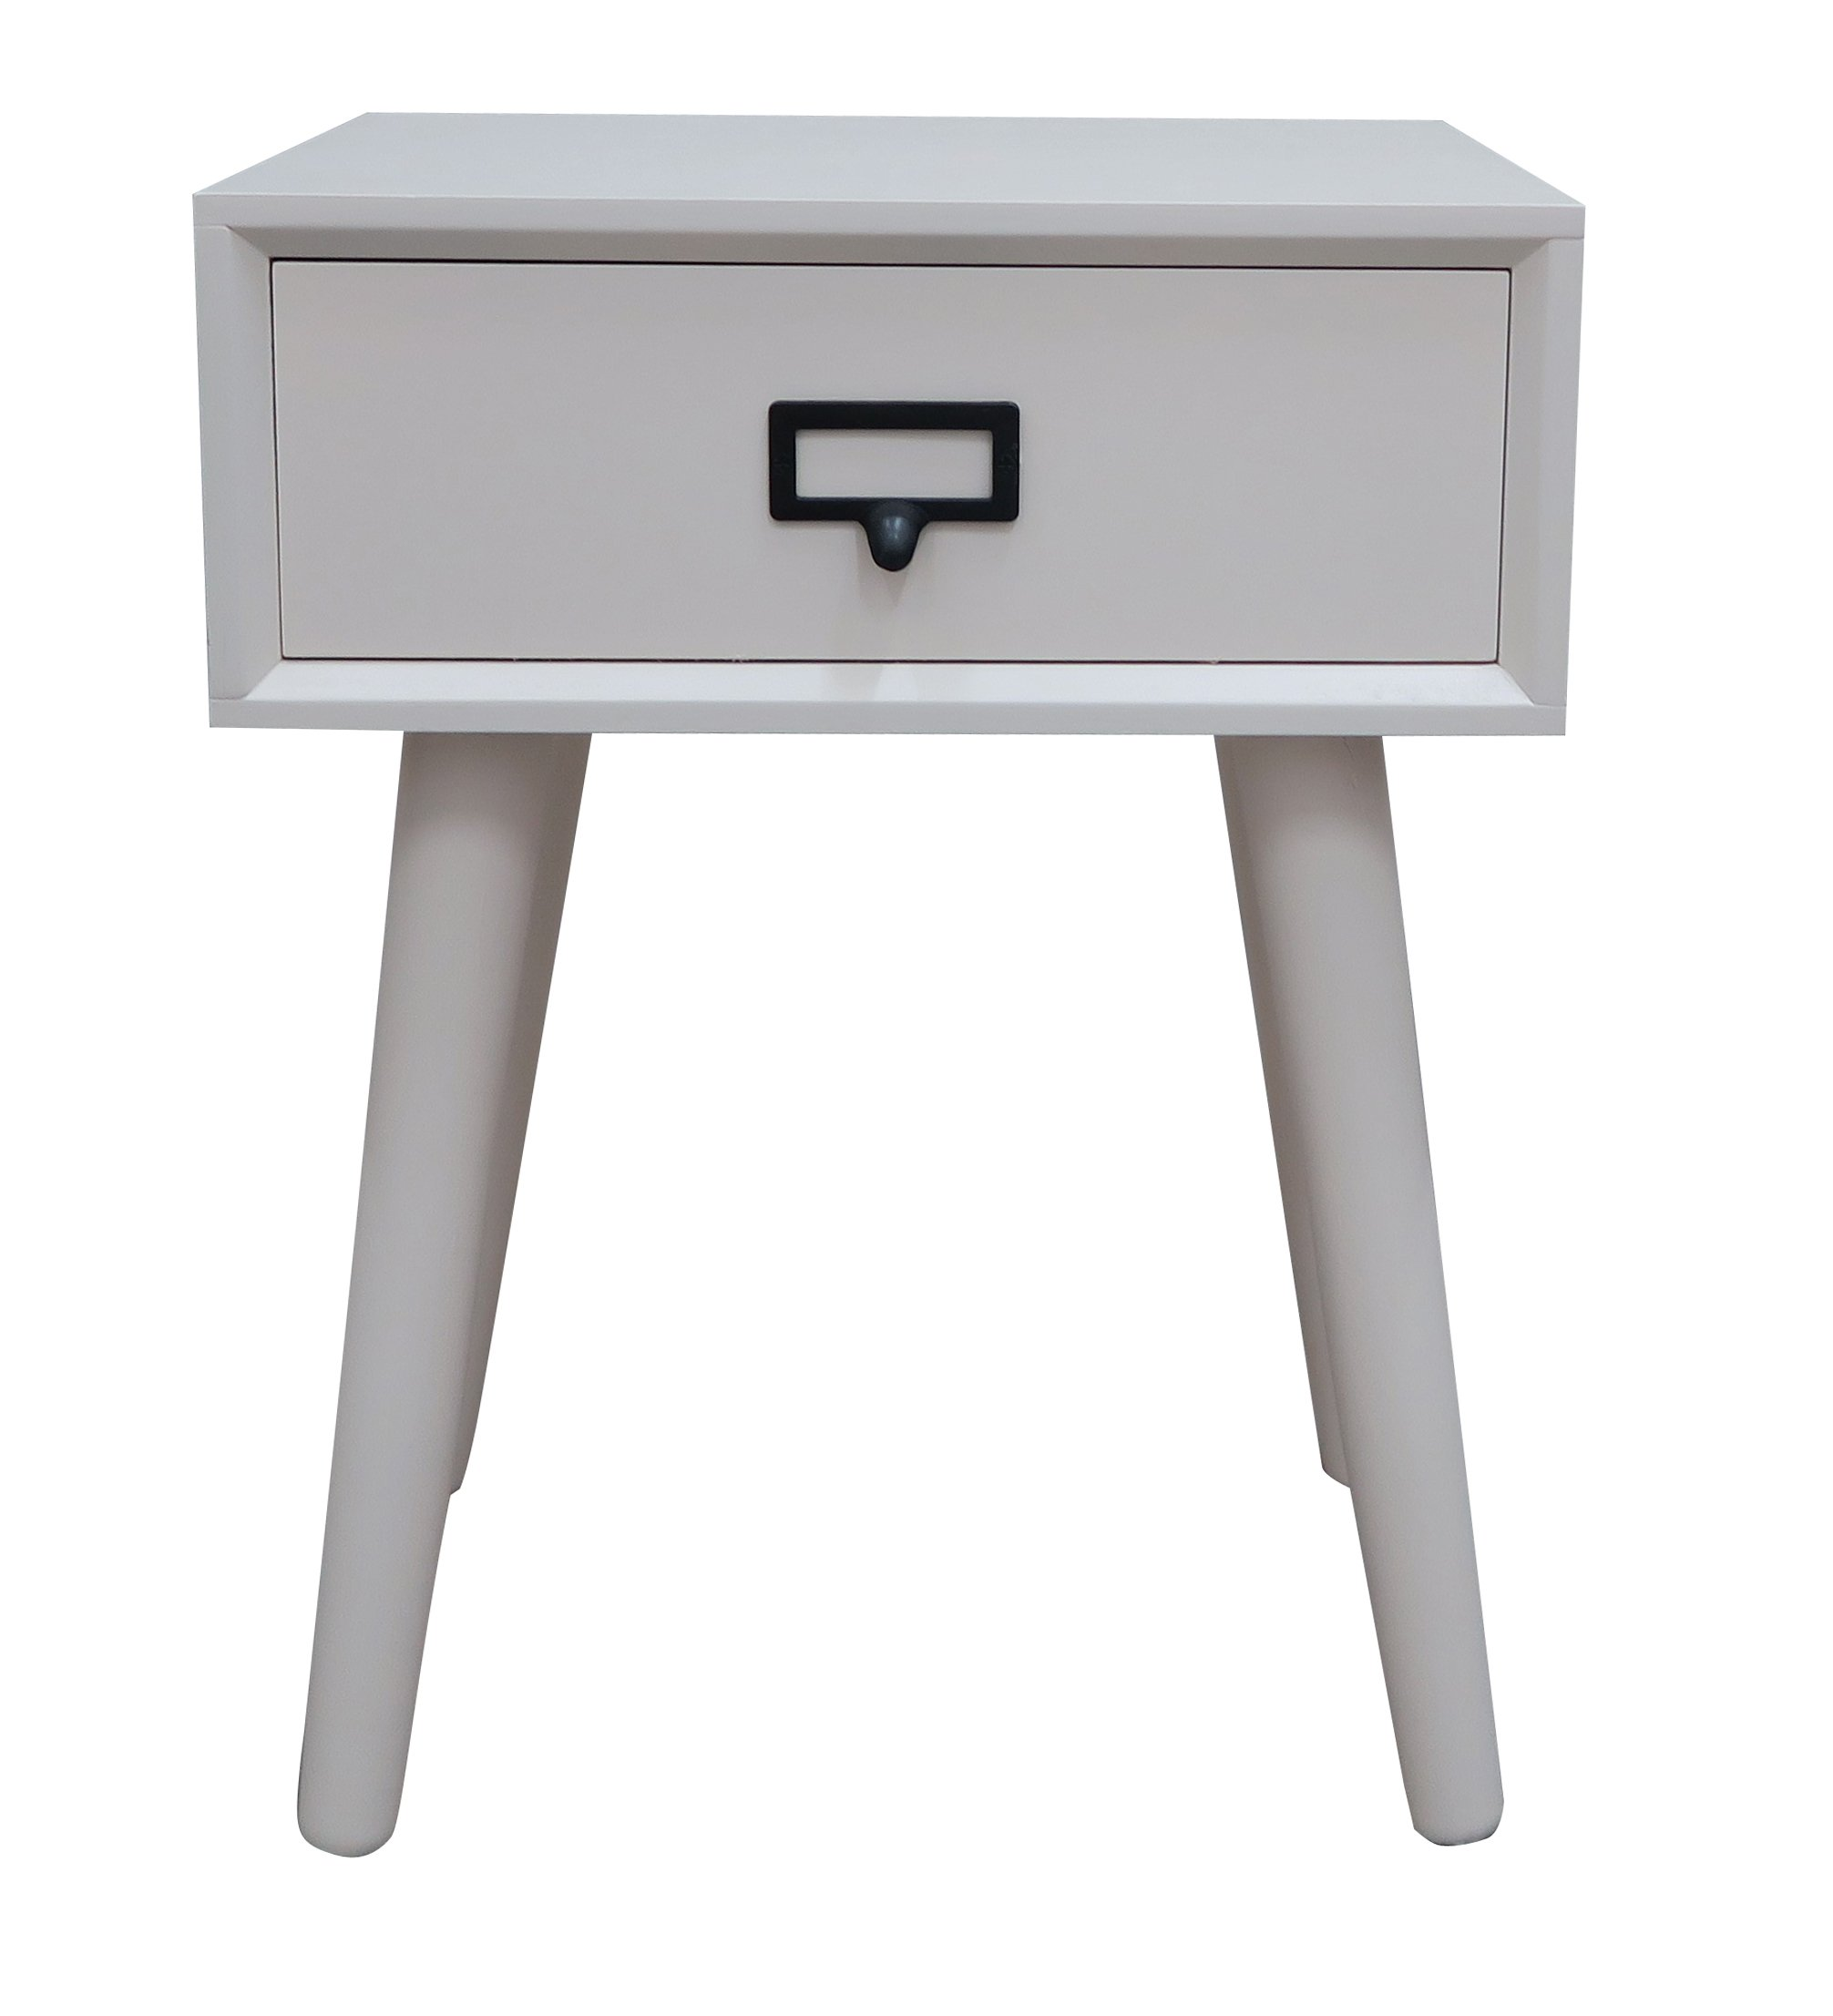 "Urbanest Hartford One Drawer Side Table, Cream - Urbanest wood side table with one drawer in a cream finish. Measurements: 15 3/4"" long, 12"" wide, and 21"" tall. Solid wood with a wood veneer top. Hand applied cream finish. Handle is metal. - living-room-furniture, living-room, end-tables - 71PF2PGyHUL -"